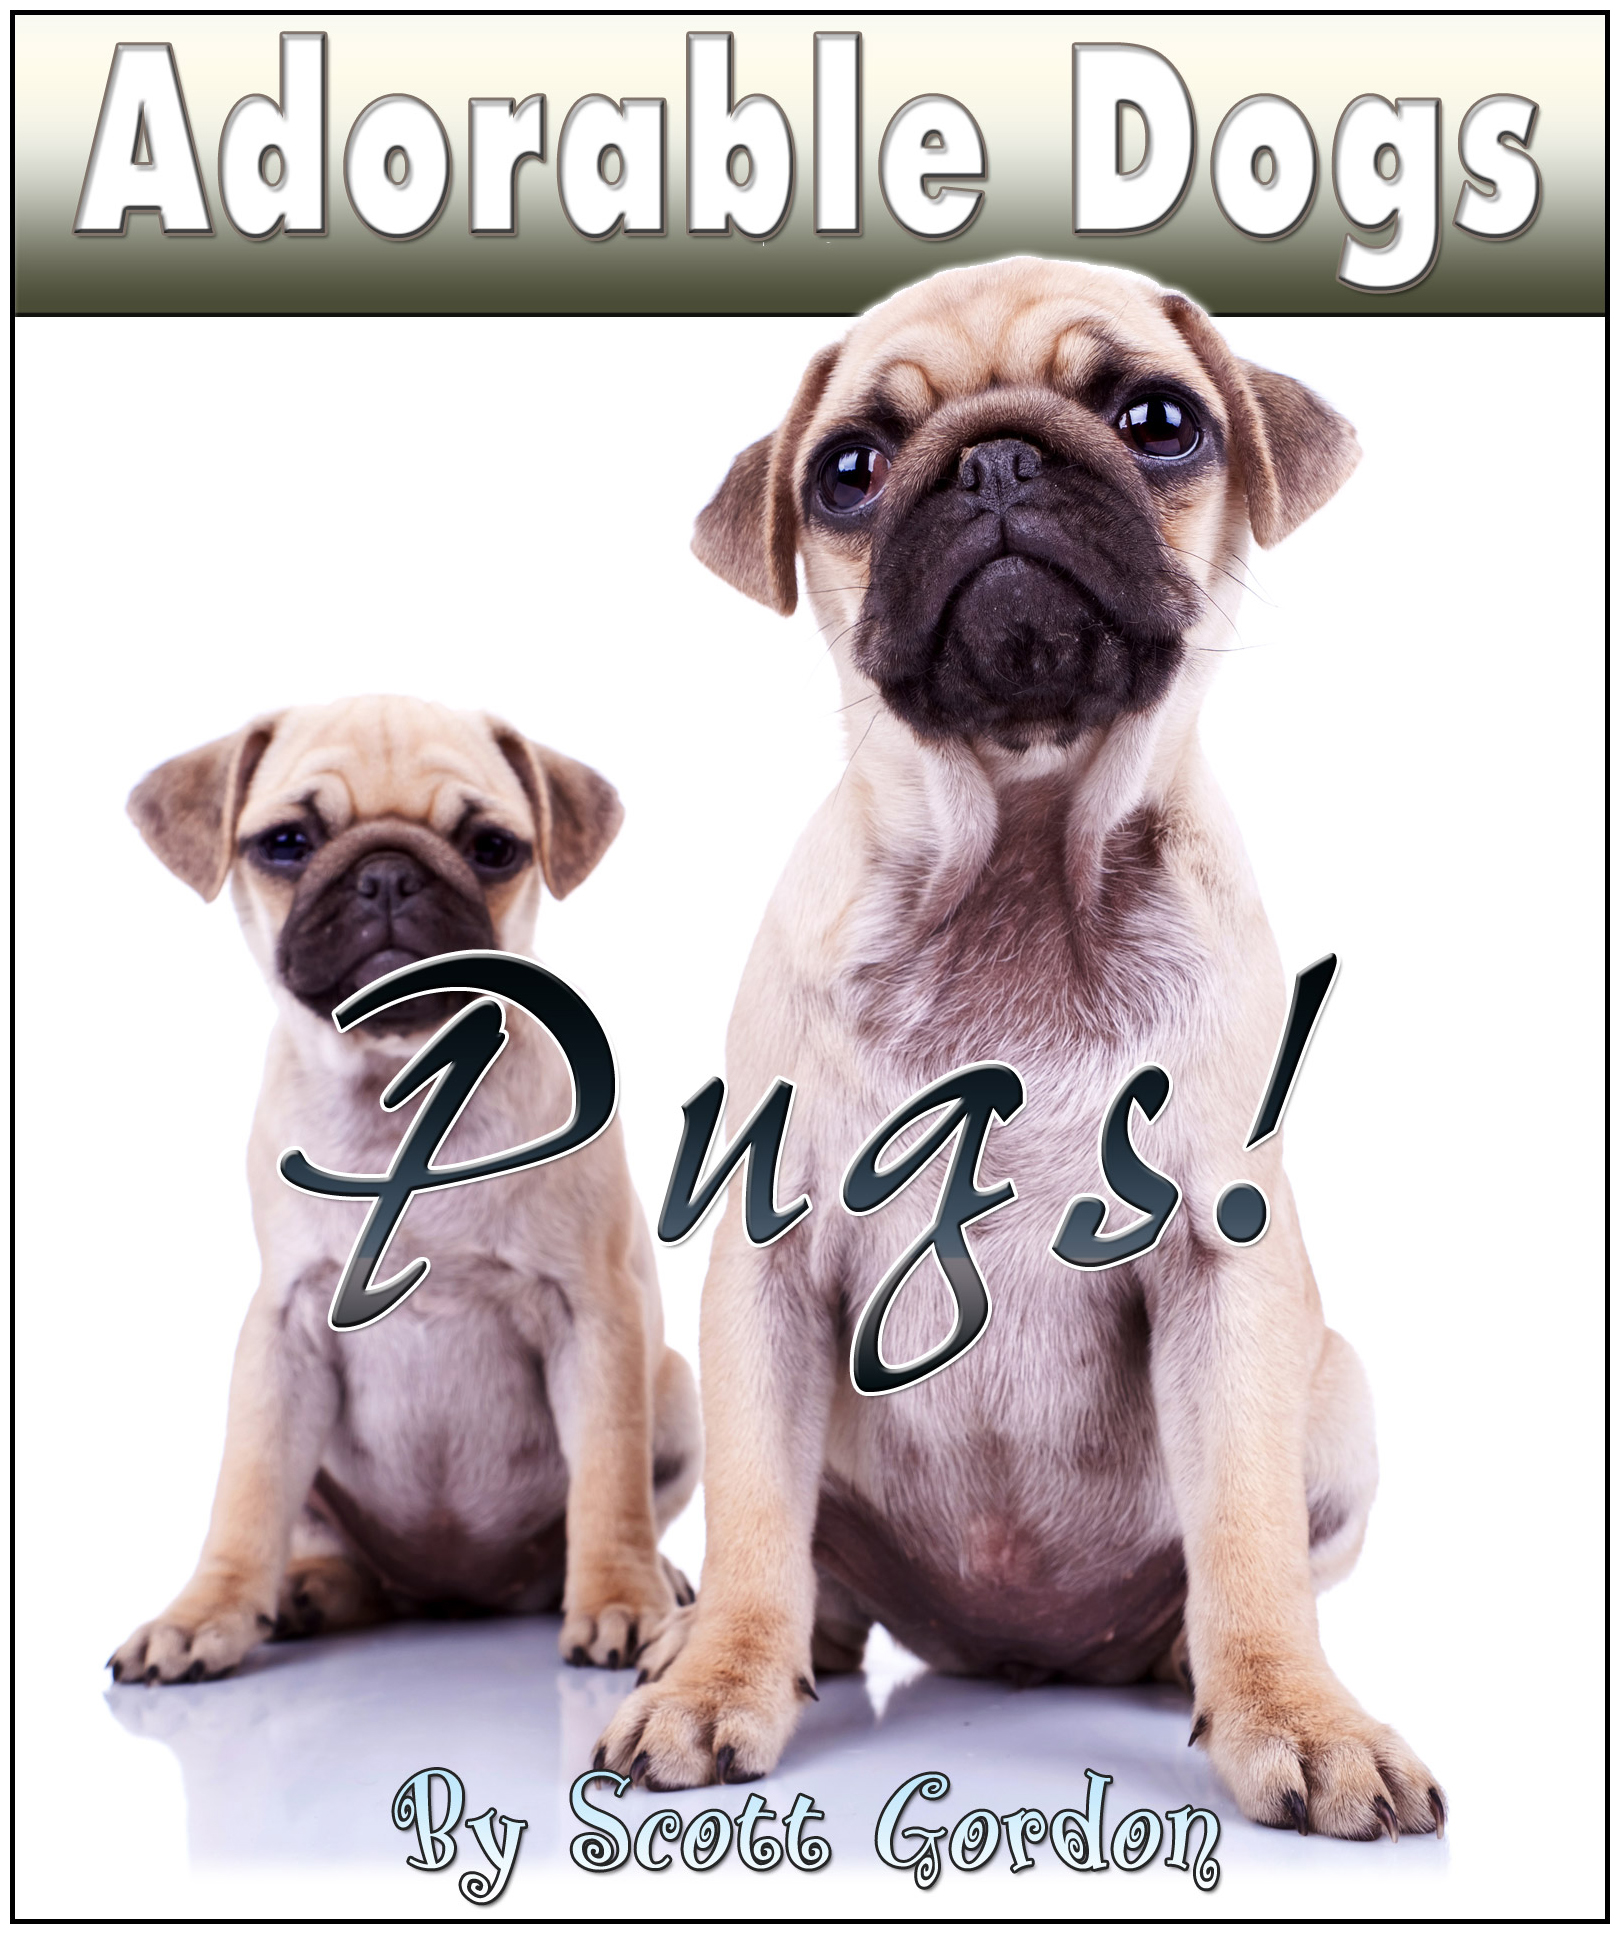 Adorable Dogs: Pugs! By: Scott Gordon